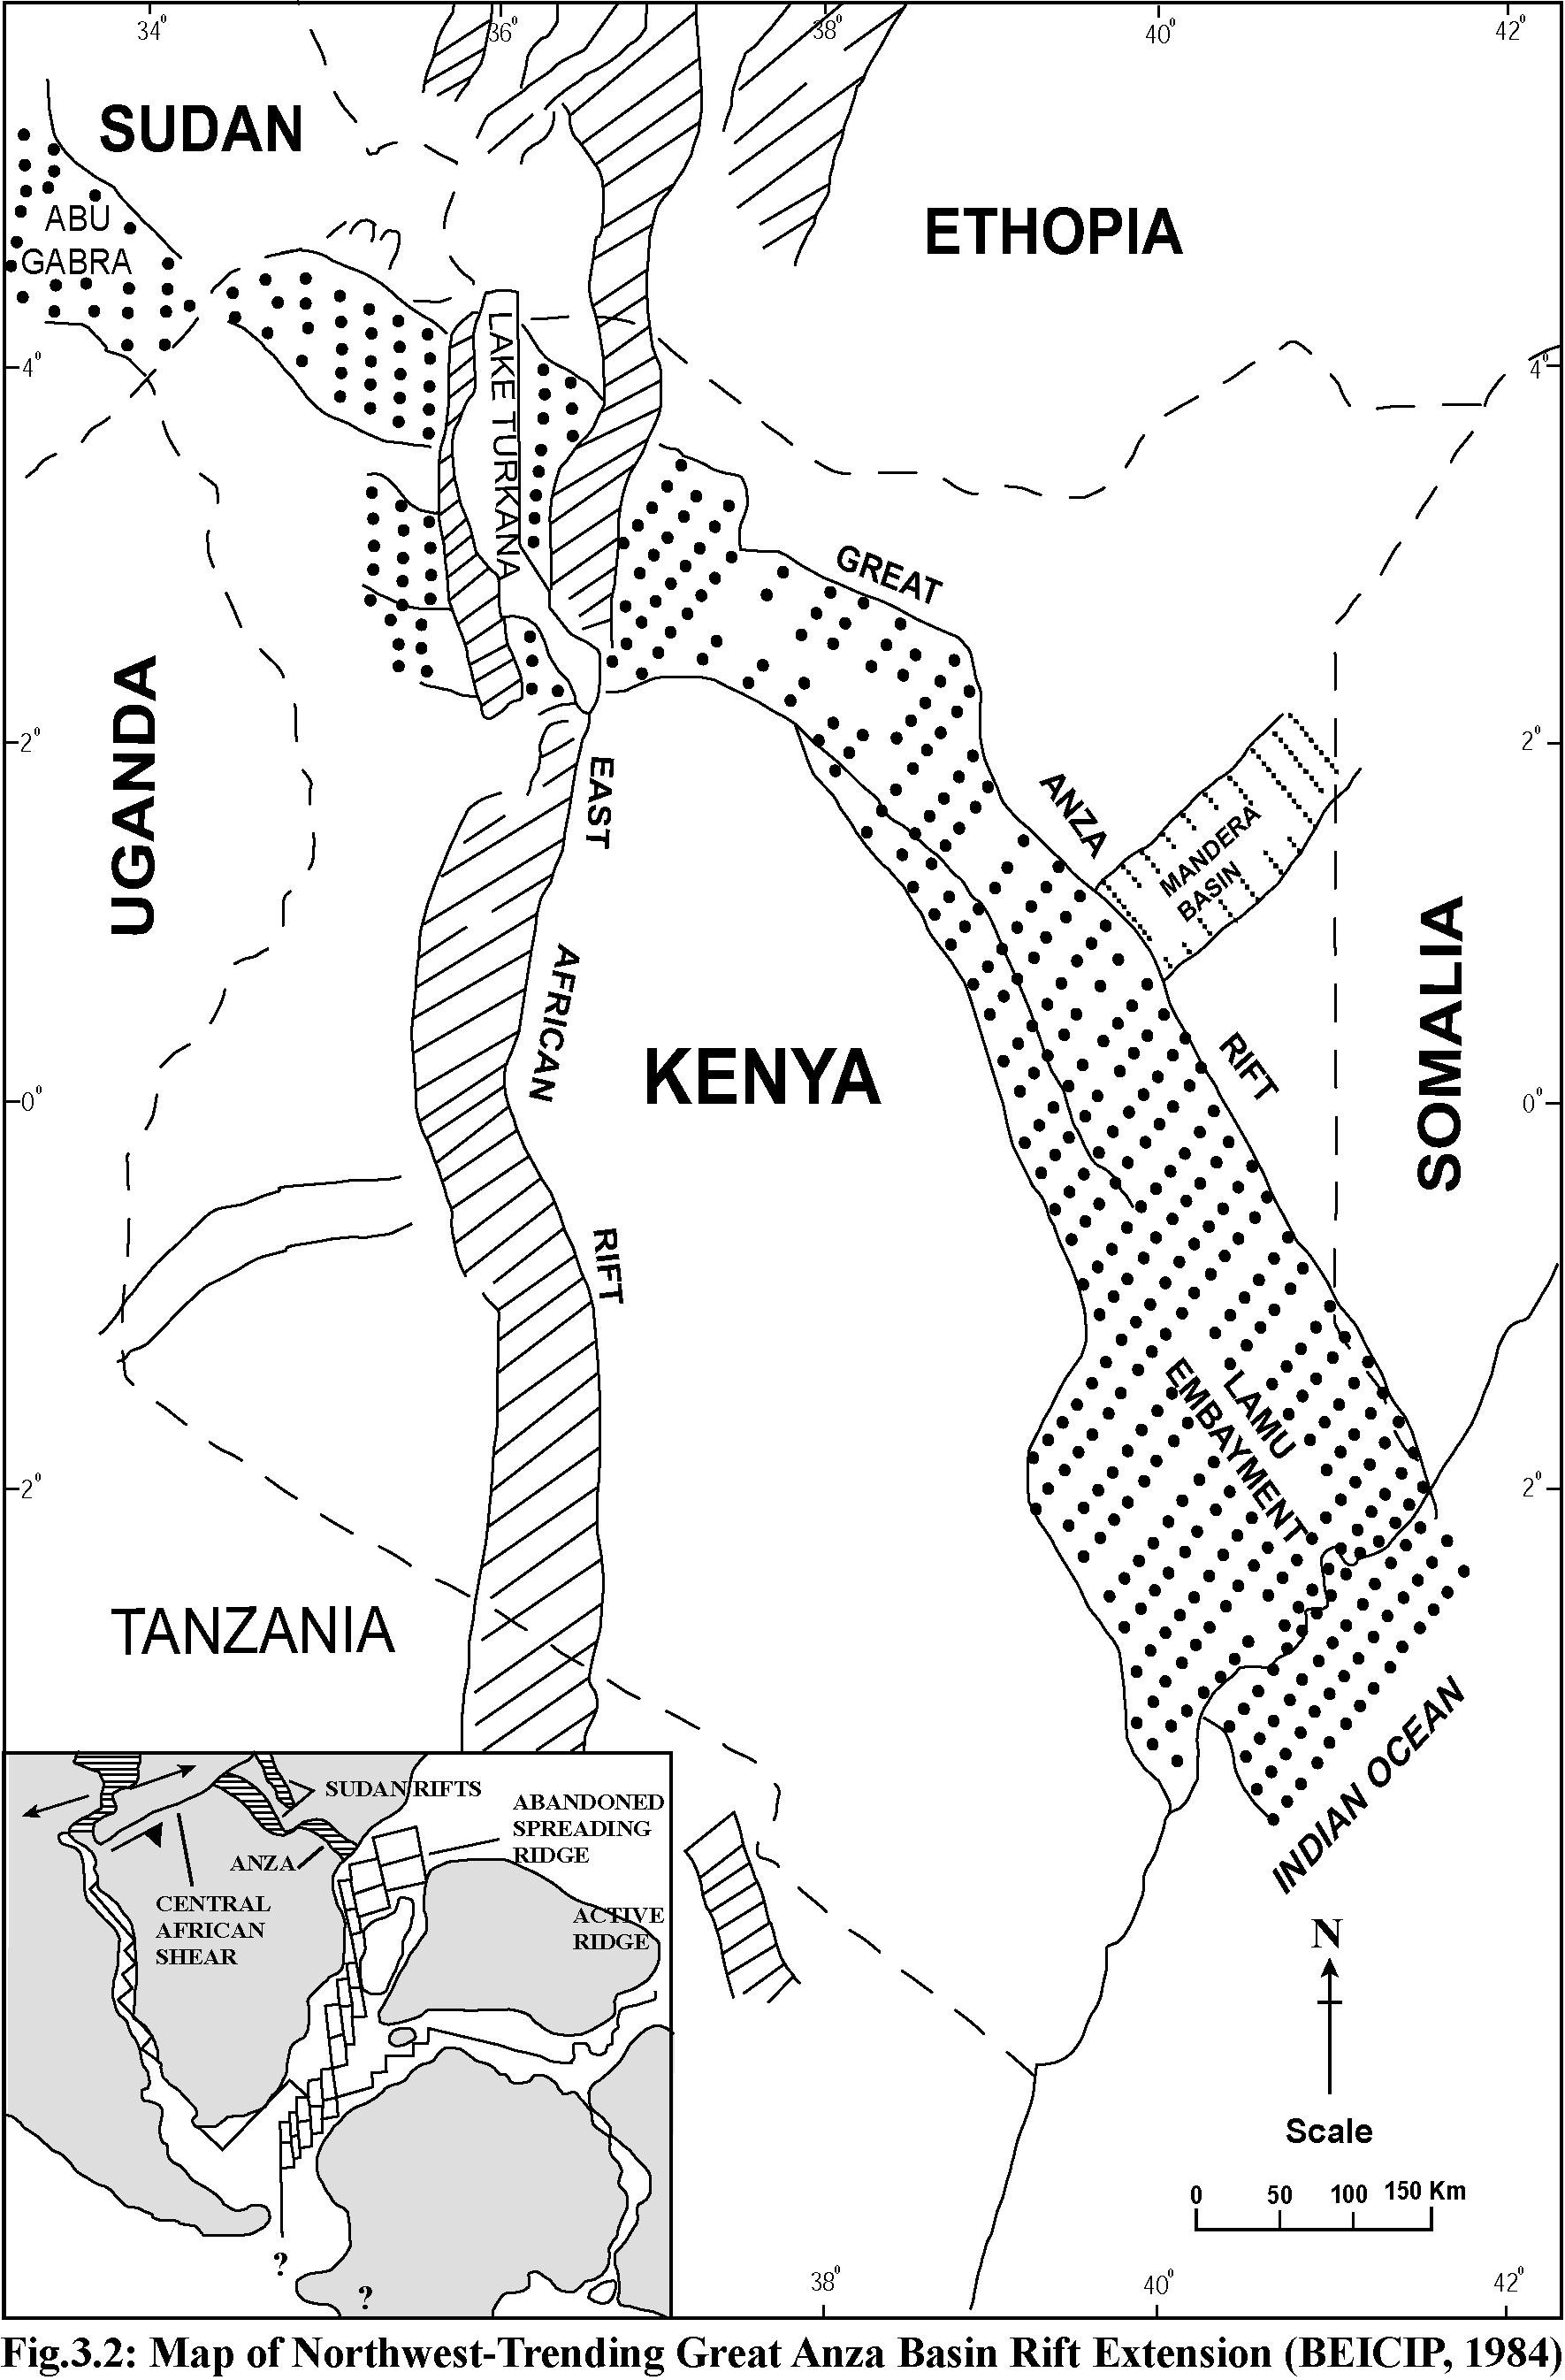 Exploration Amp Production Geology Petroleum Potential Of Nw Kenya Rift Basins A Synopsis Of